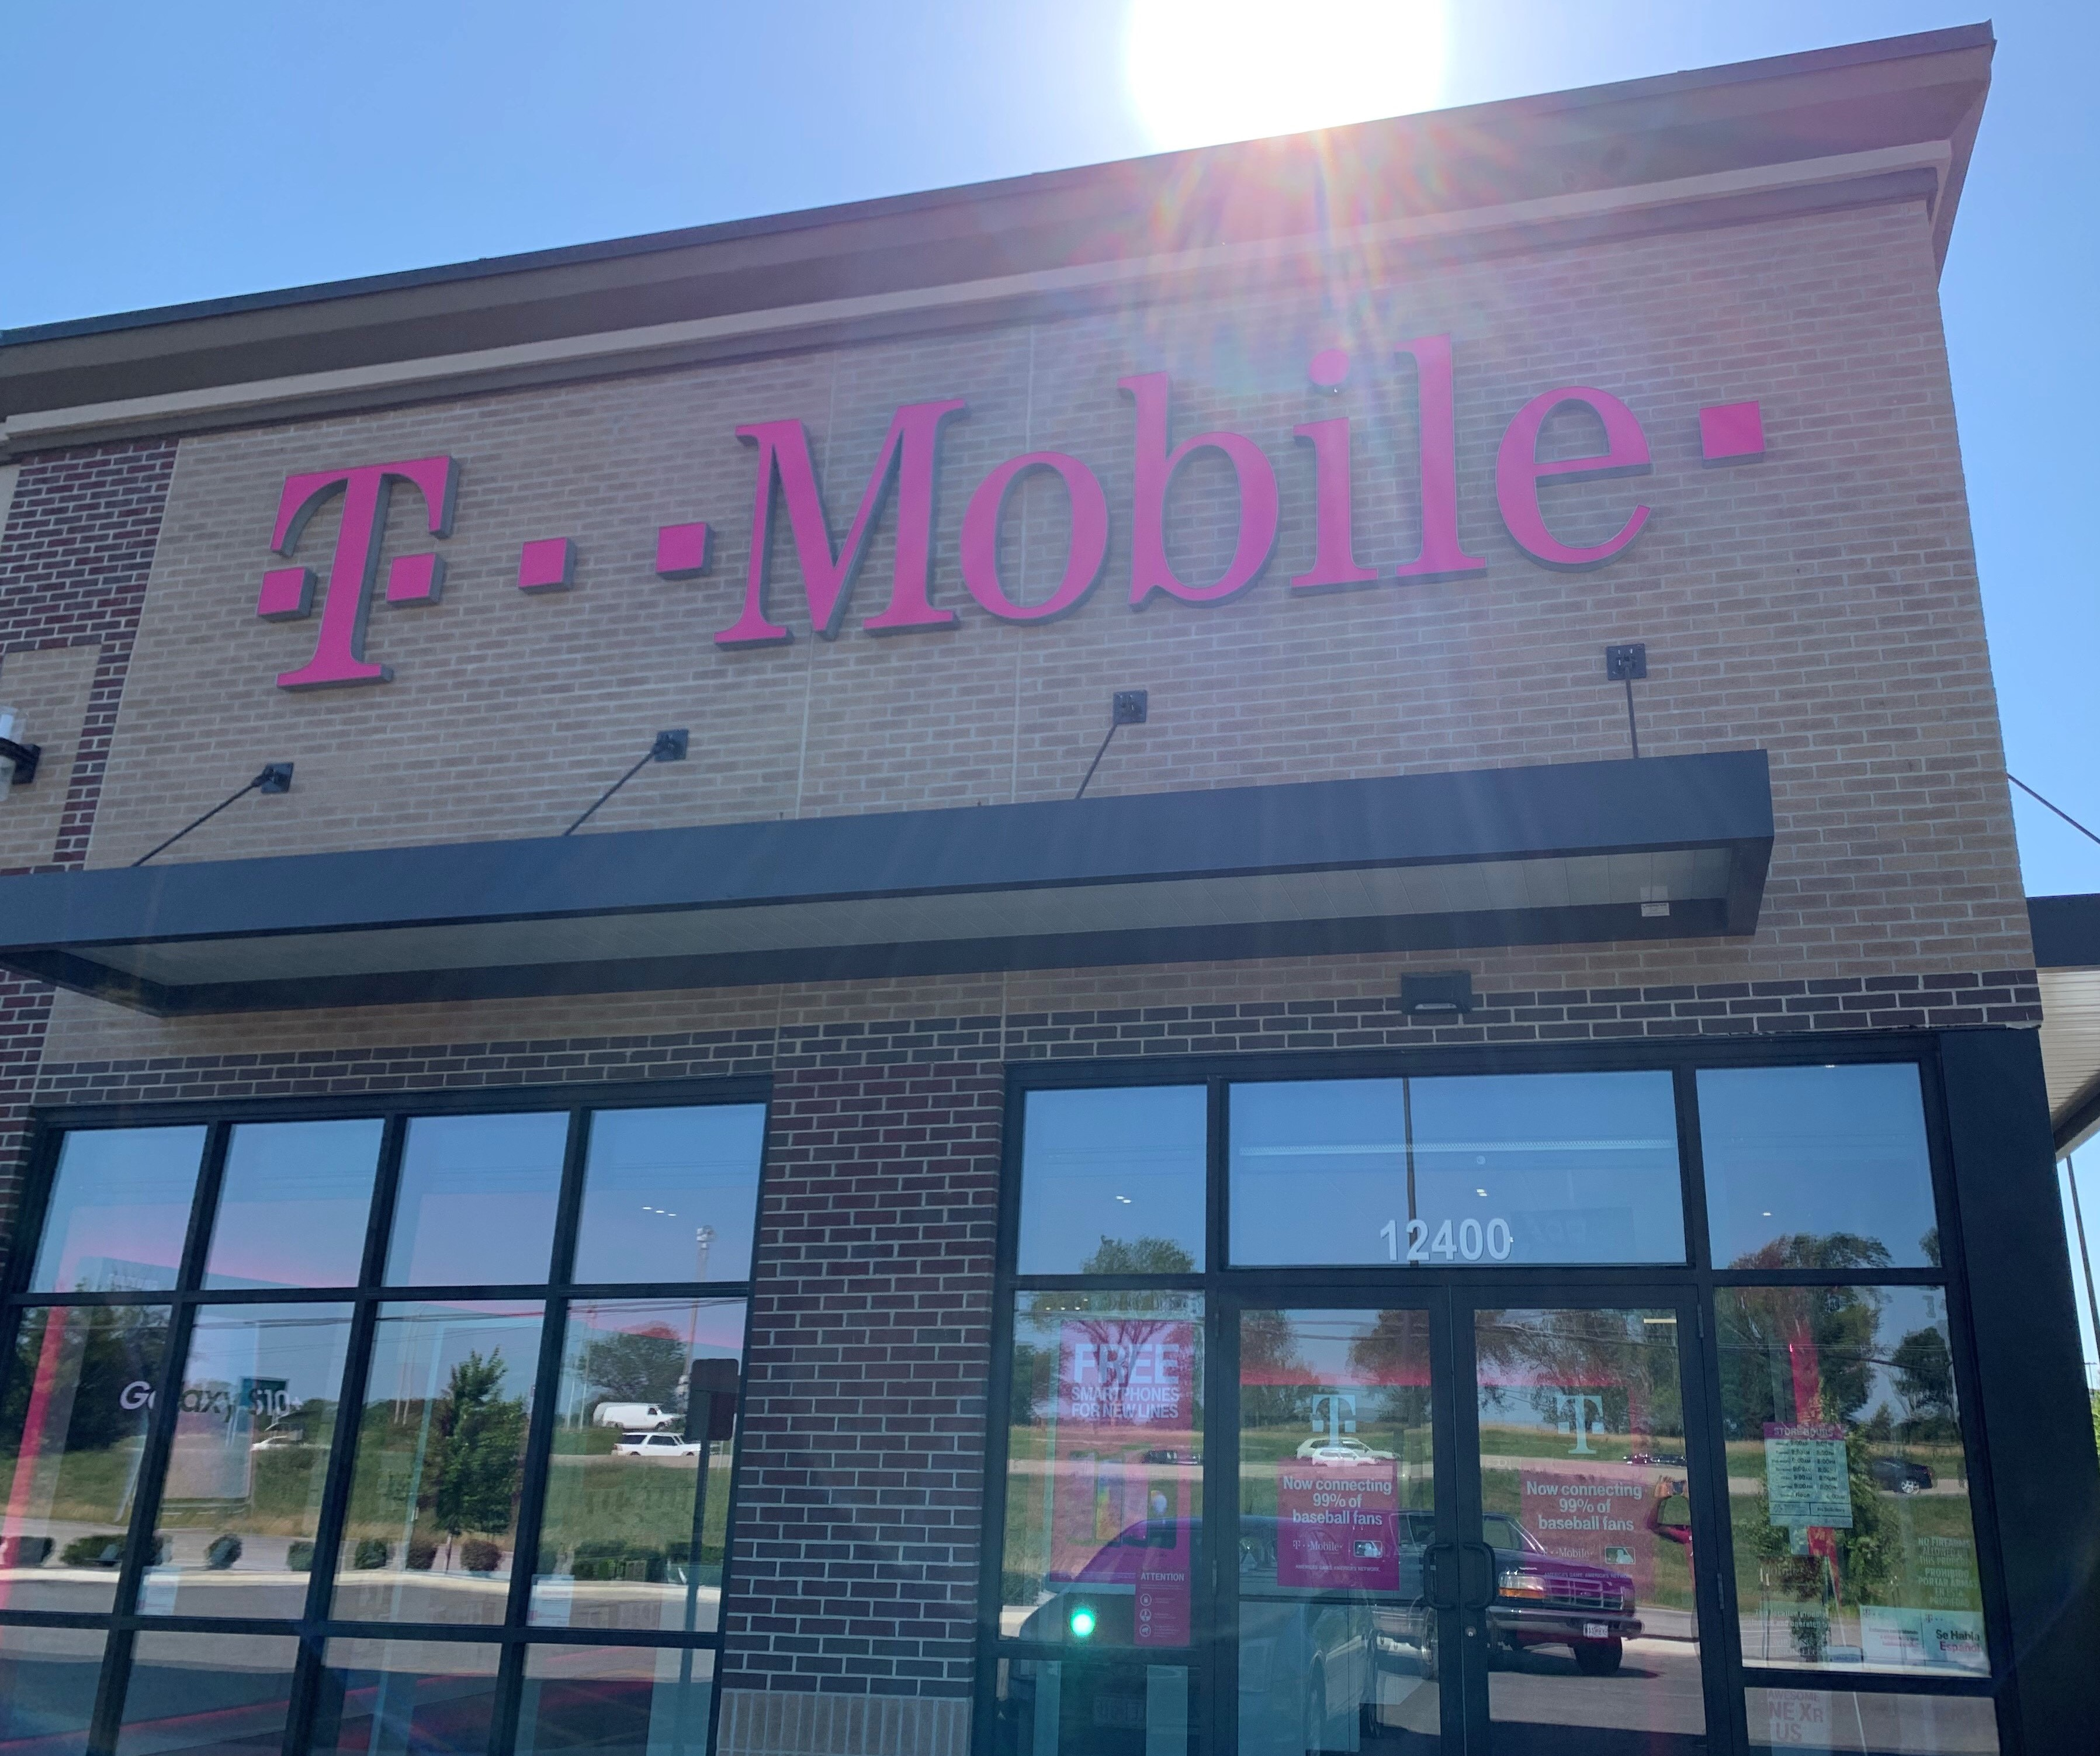 Cell Phones, Plans, and Accessories at T-Mobile 12400 S U.S. ... on highway 70 missouri map, highway 67 missouri map, highway 44 missouri map, highway 79 missouri map, highway 60 missouri map, highway 19 missouri map, ohio indiana kentucky interstate map,